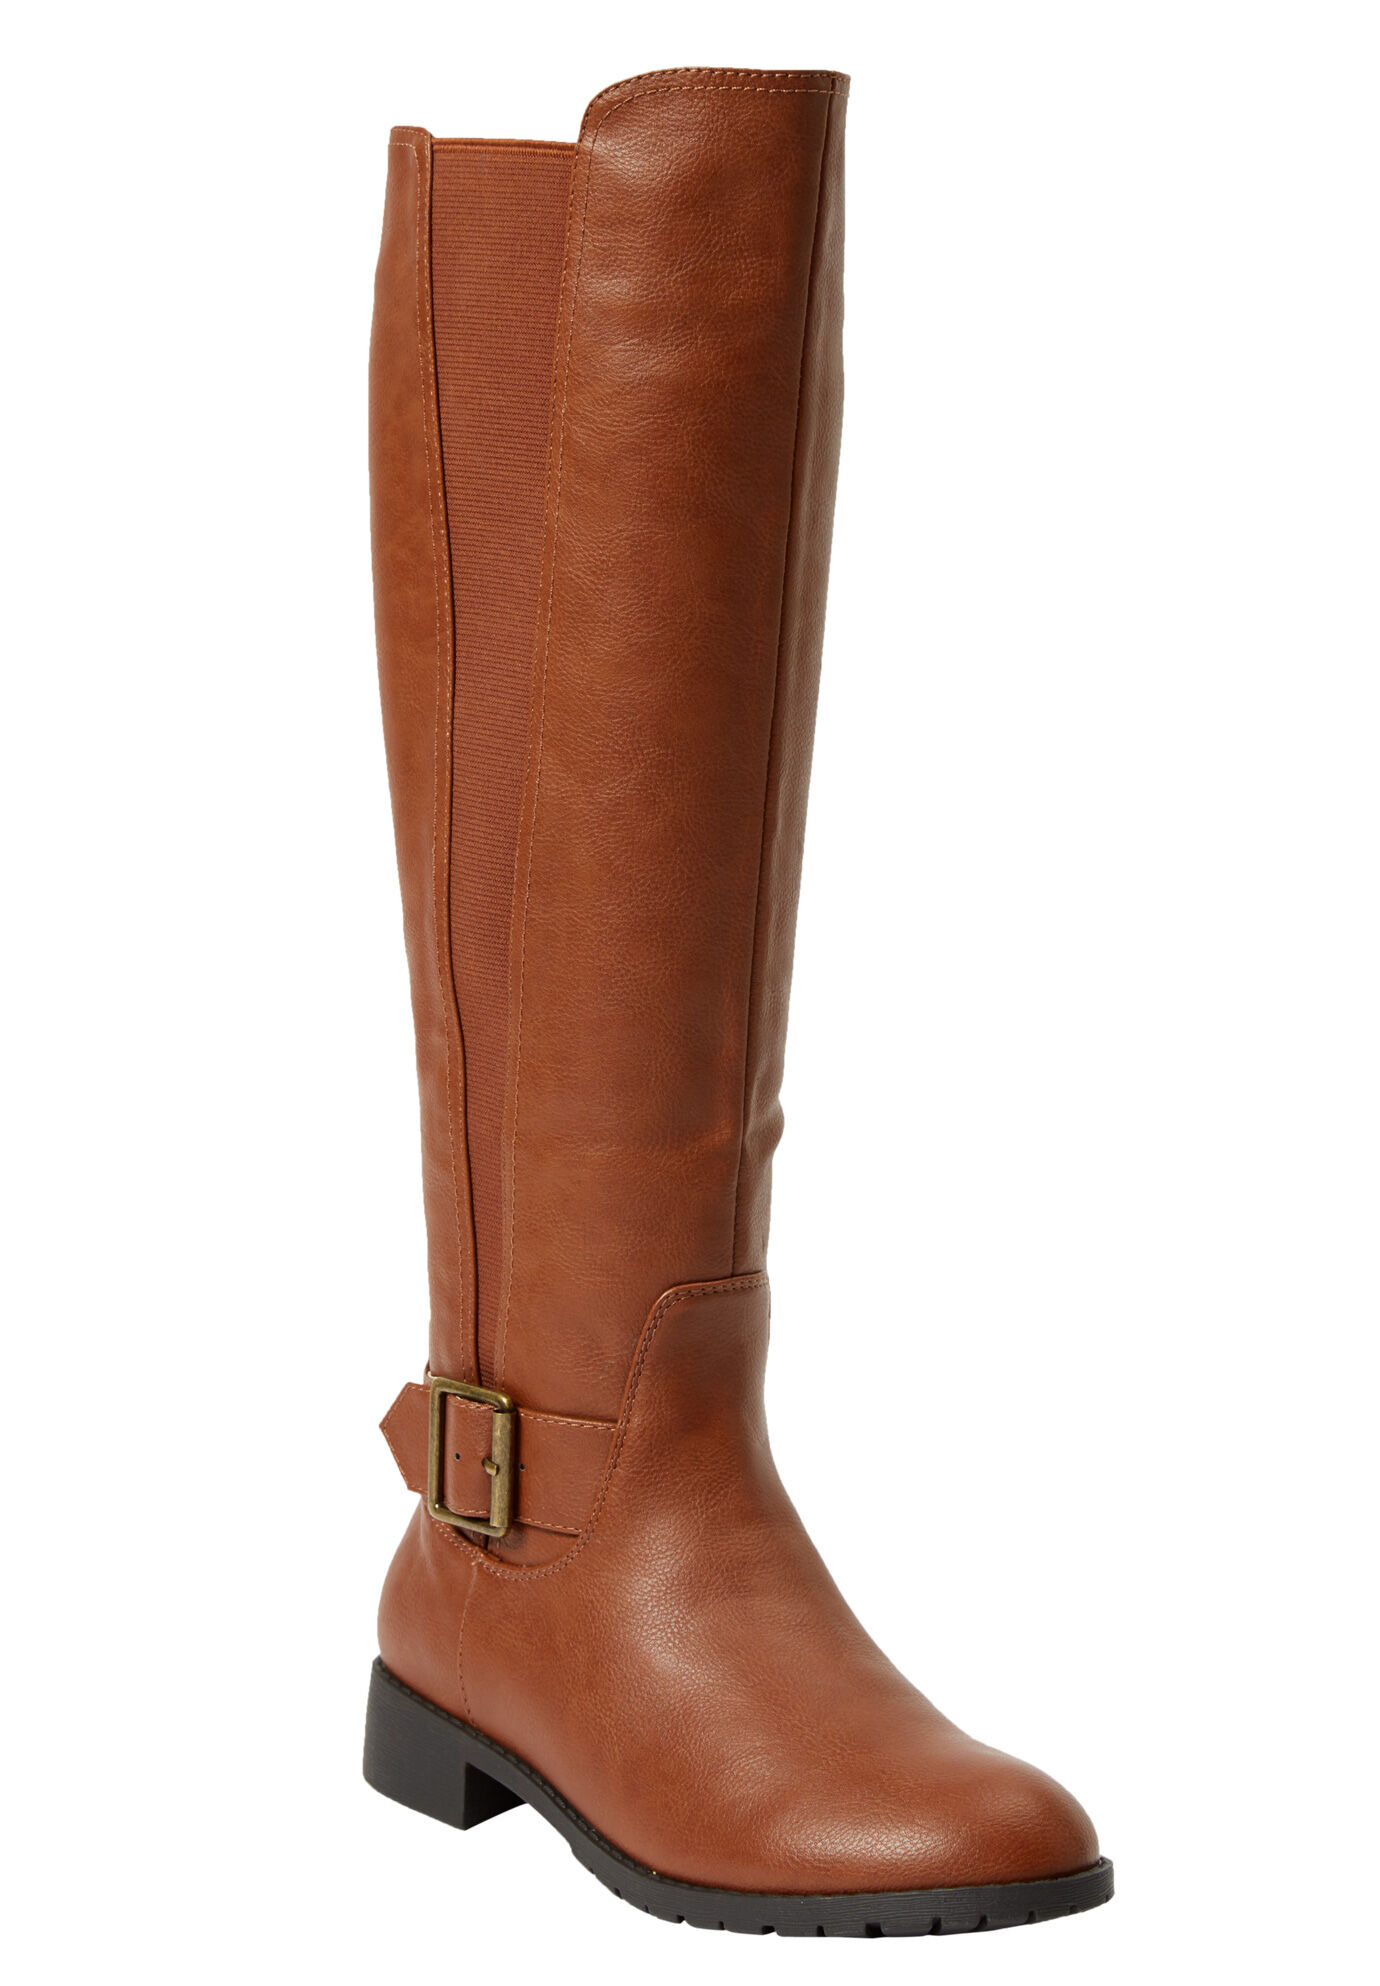 Wide \u0026 Extra Wide Calf Boots for Women